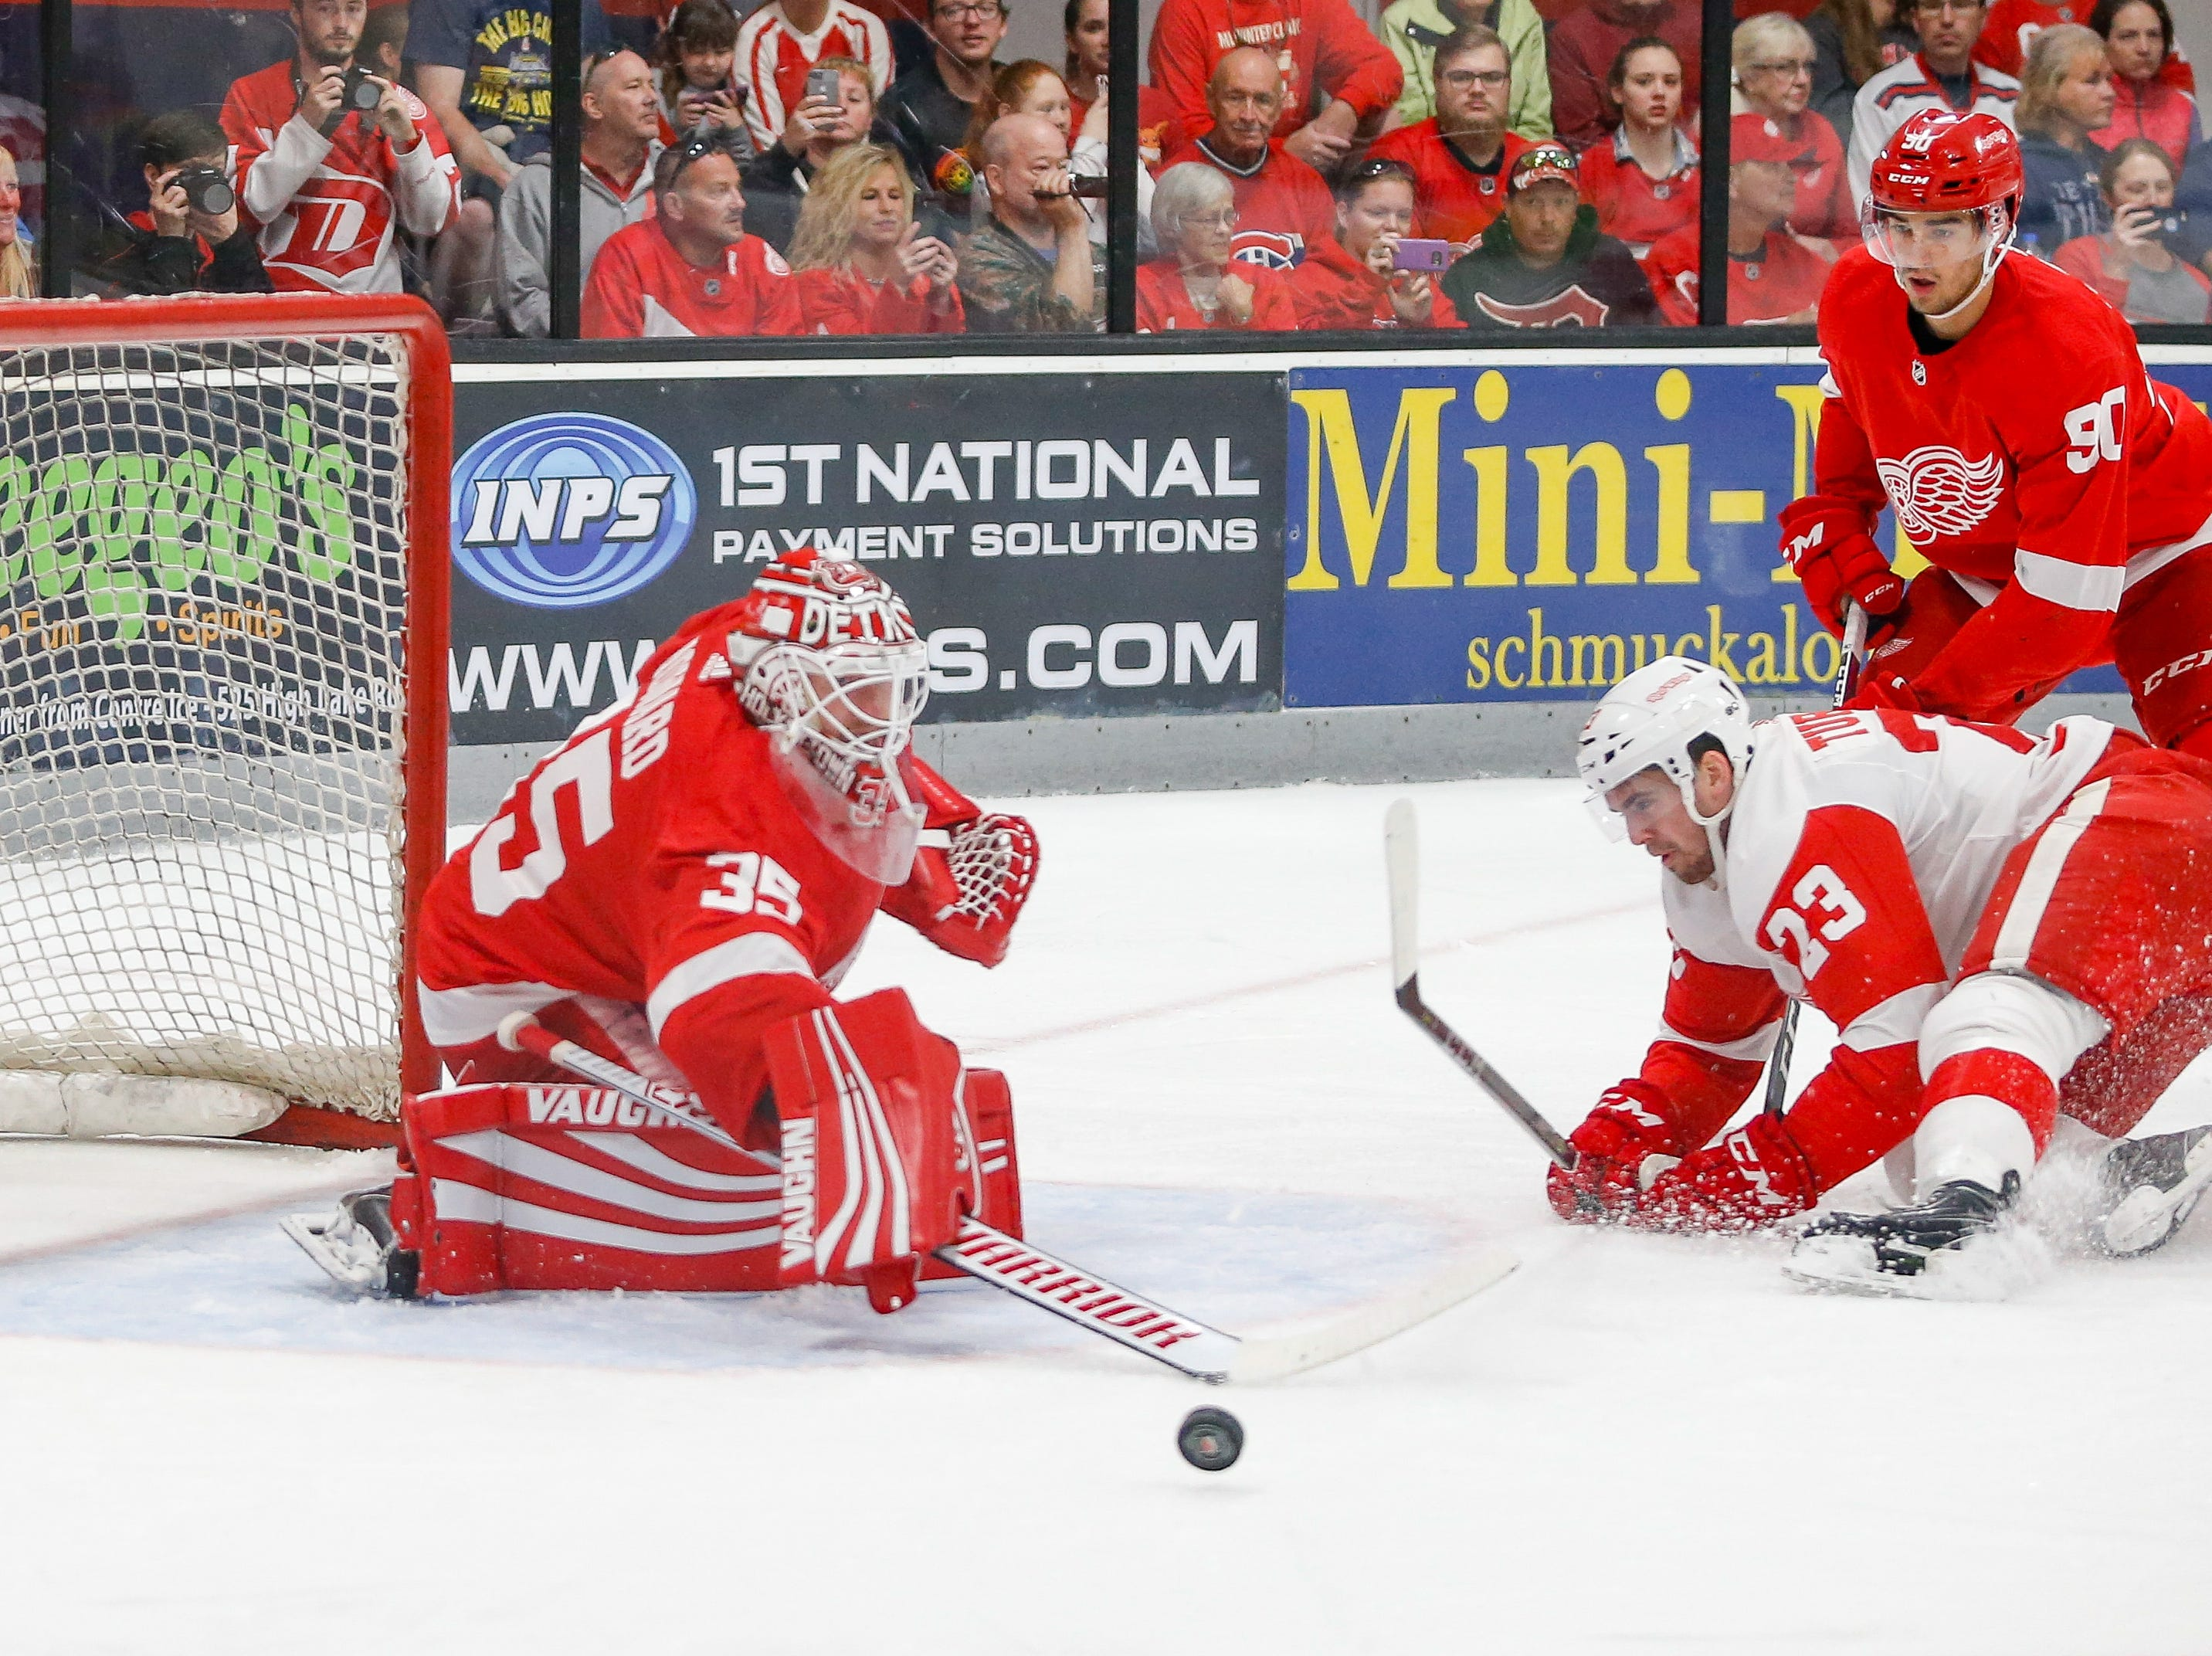 Goatender Jimmy Howard (35) brooms aside a shot by Dominic Turgeon (23), who was taken down on the play by Joe Veleno (90). Turgeon was awarded a penalty shot, but missed on it.